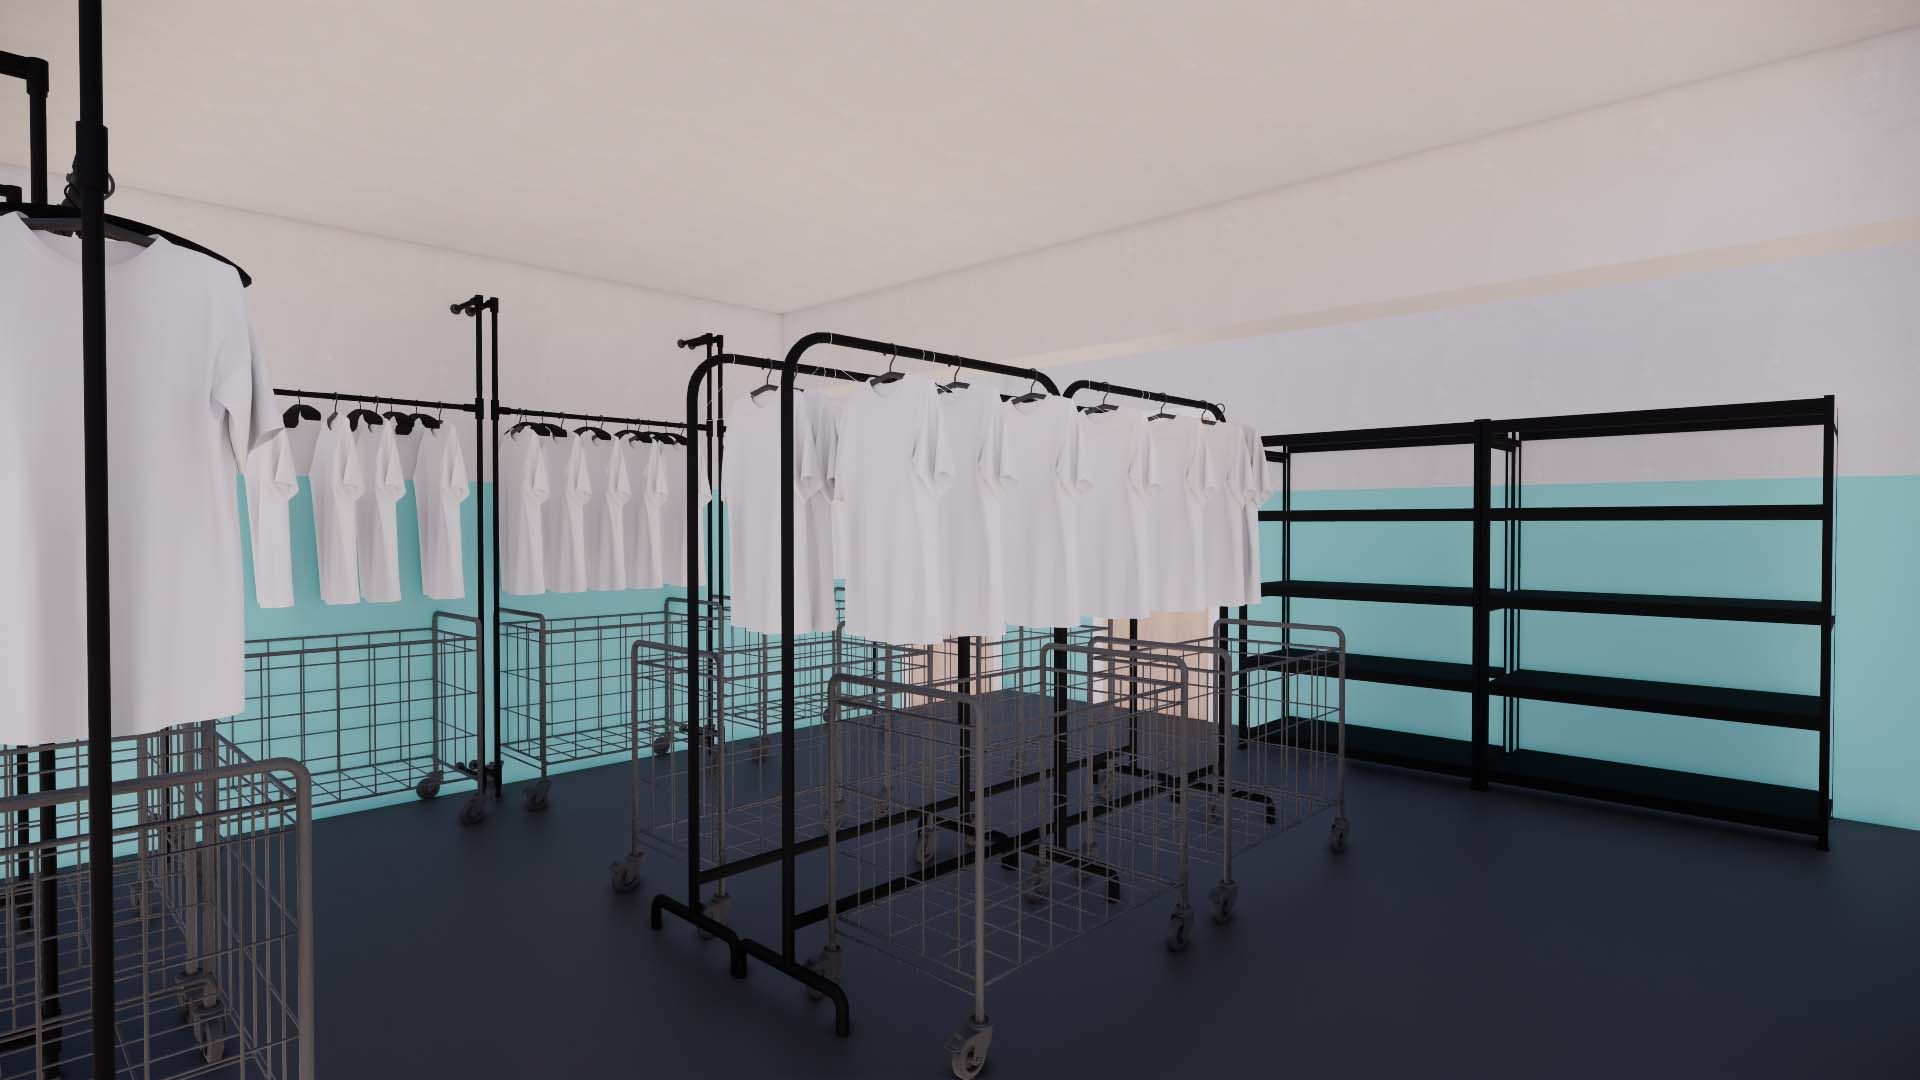 A 3-D rendering (view #2) of MFP's clothing shop, designed by TBL. The updated space features durable materials that are easily navigated by clients and staff.